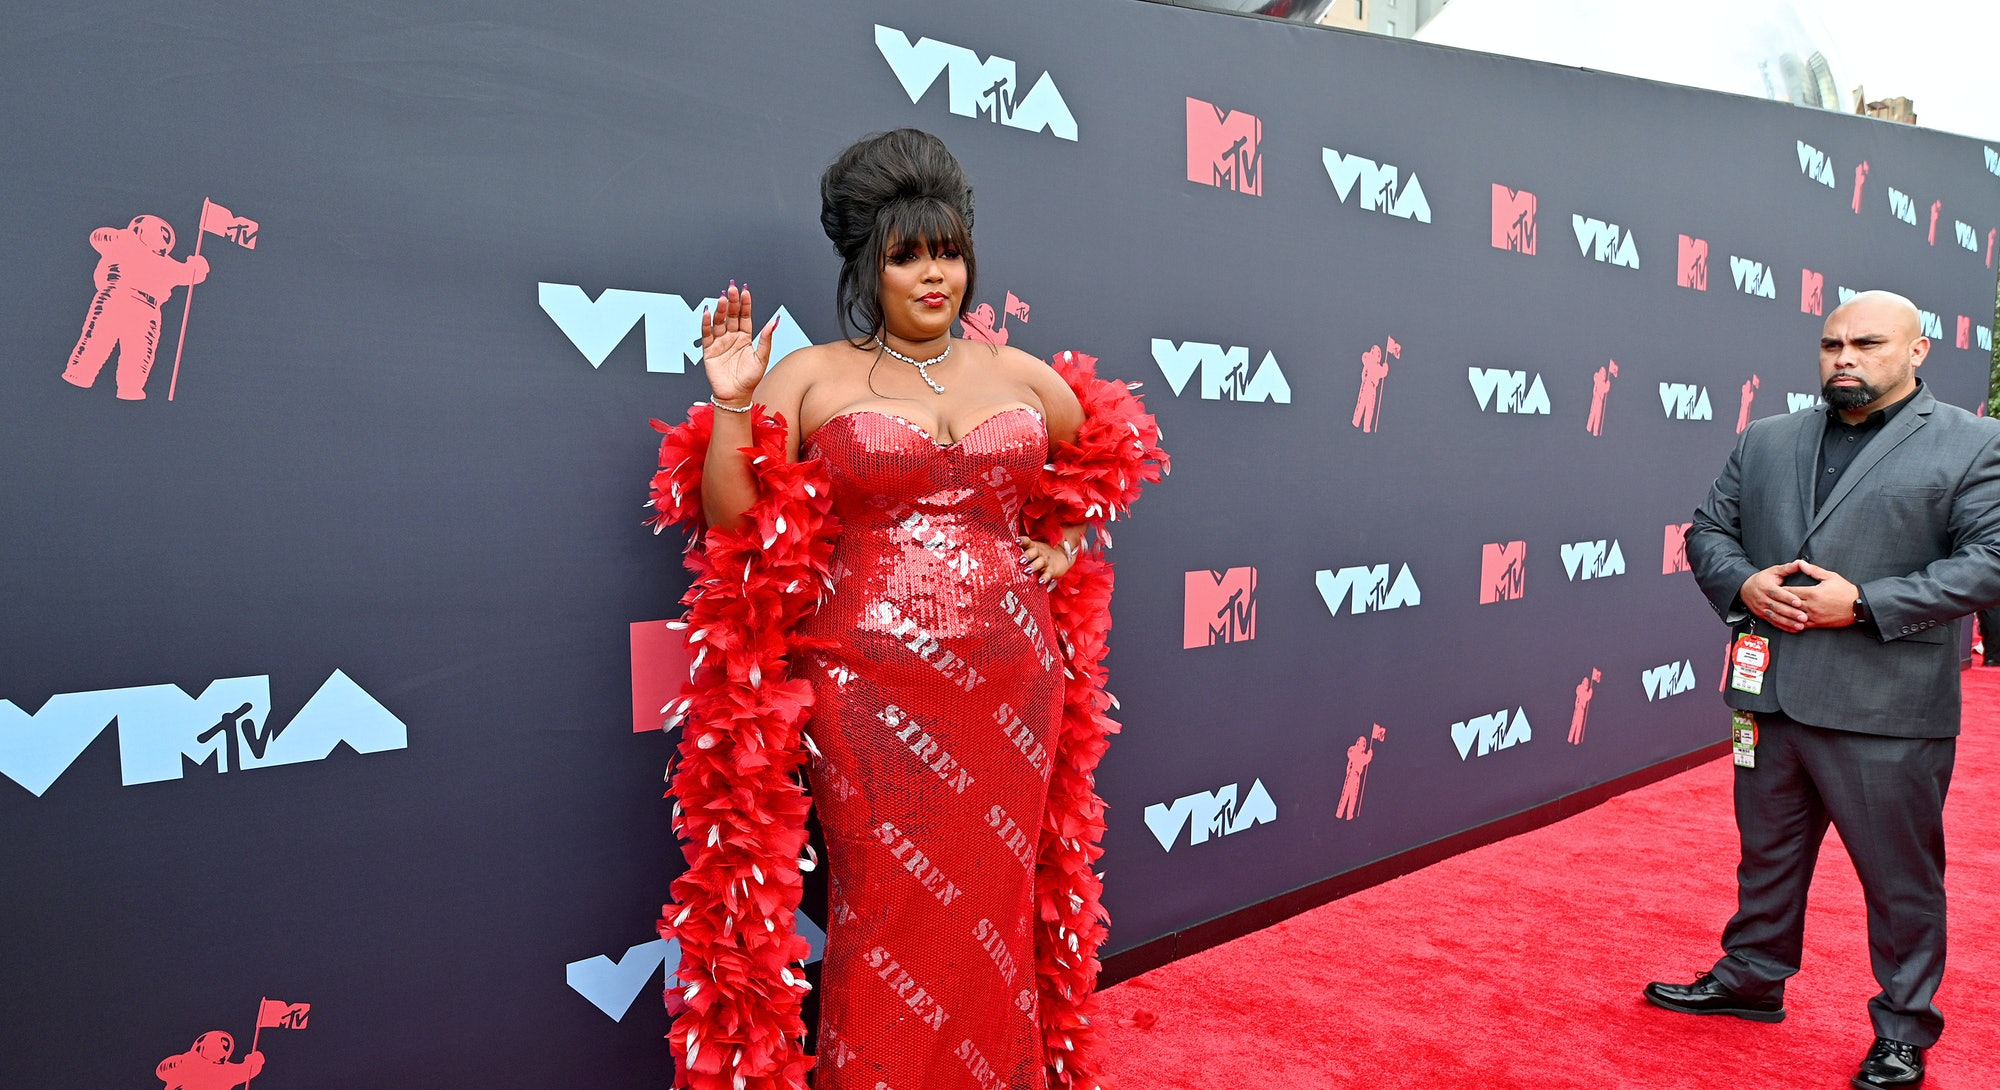 NEWARK, NEW JERSEY - AUGUST 26: Lizzo attends the 2019 MTV Video Music Awards at Prudential Center on August 26, 2019 in Newark, New Jersey. (Photo by Dia Dipasupil/Getty Images for MTV)